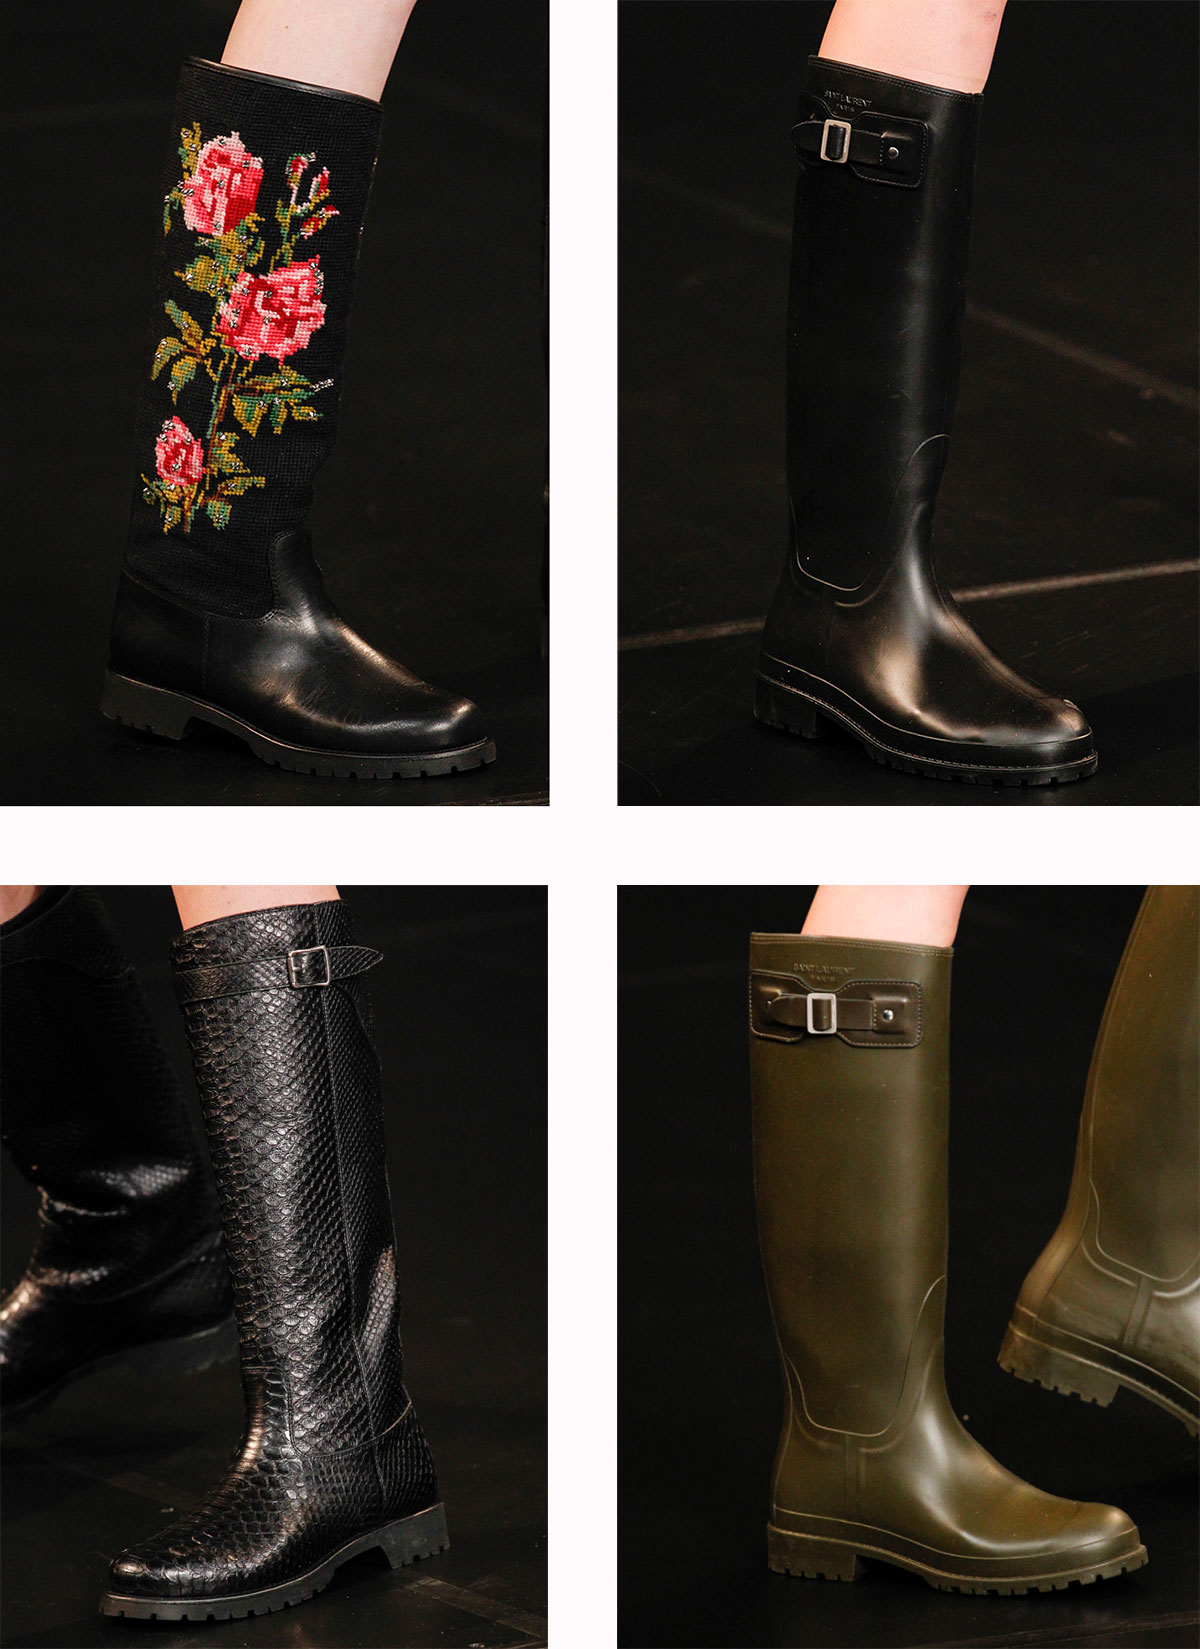 Saint Laurent Spring Summer 2016 rubber boots